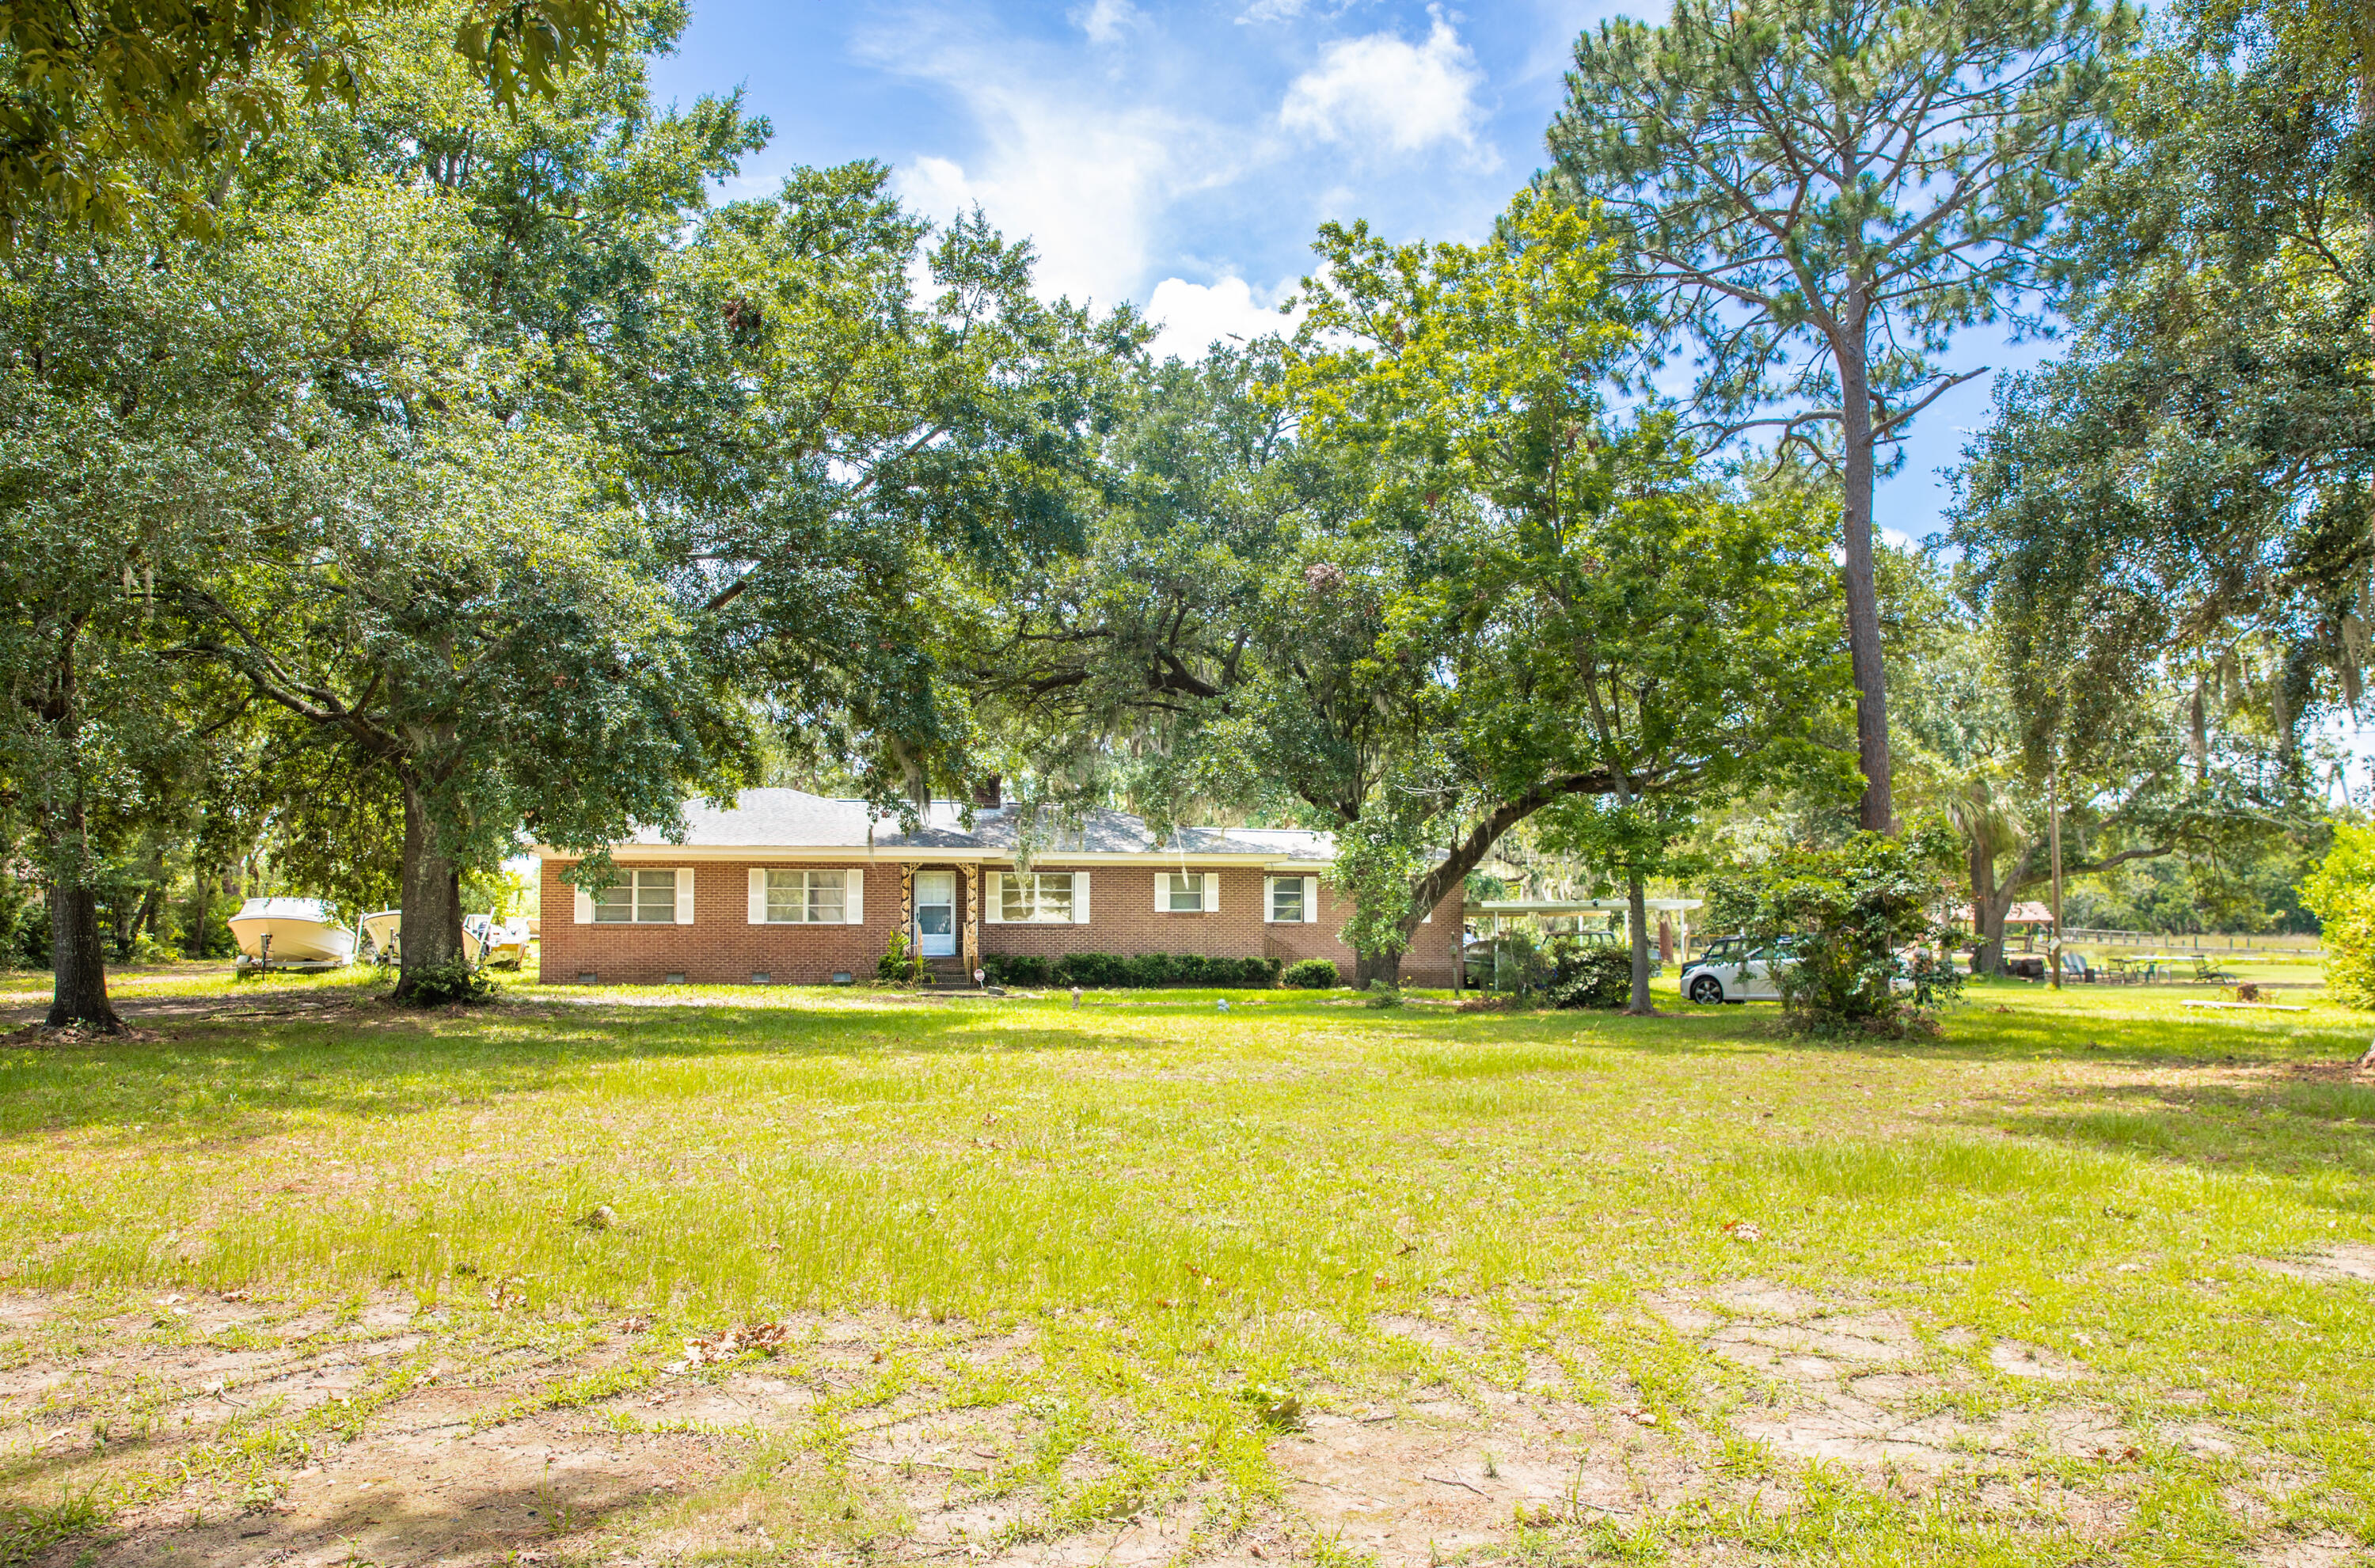 Bayview Acres Homes For Sale - 235 Bayview, Mount Pleasant, SC - 7